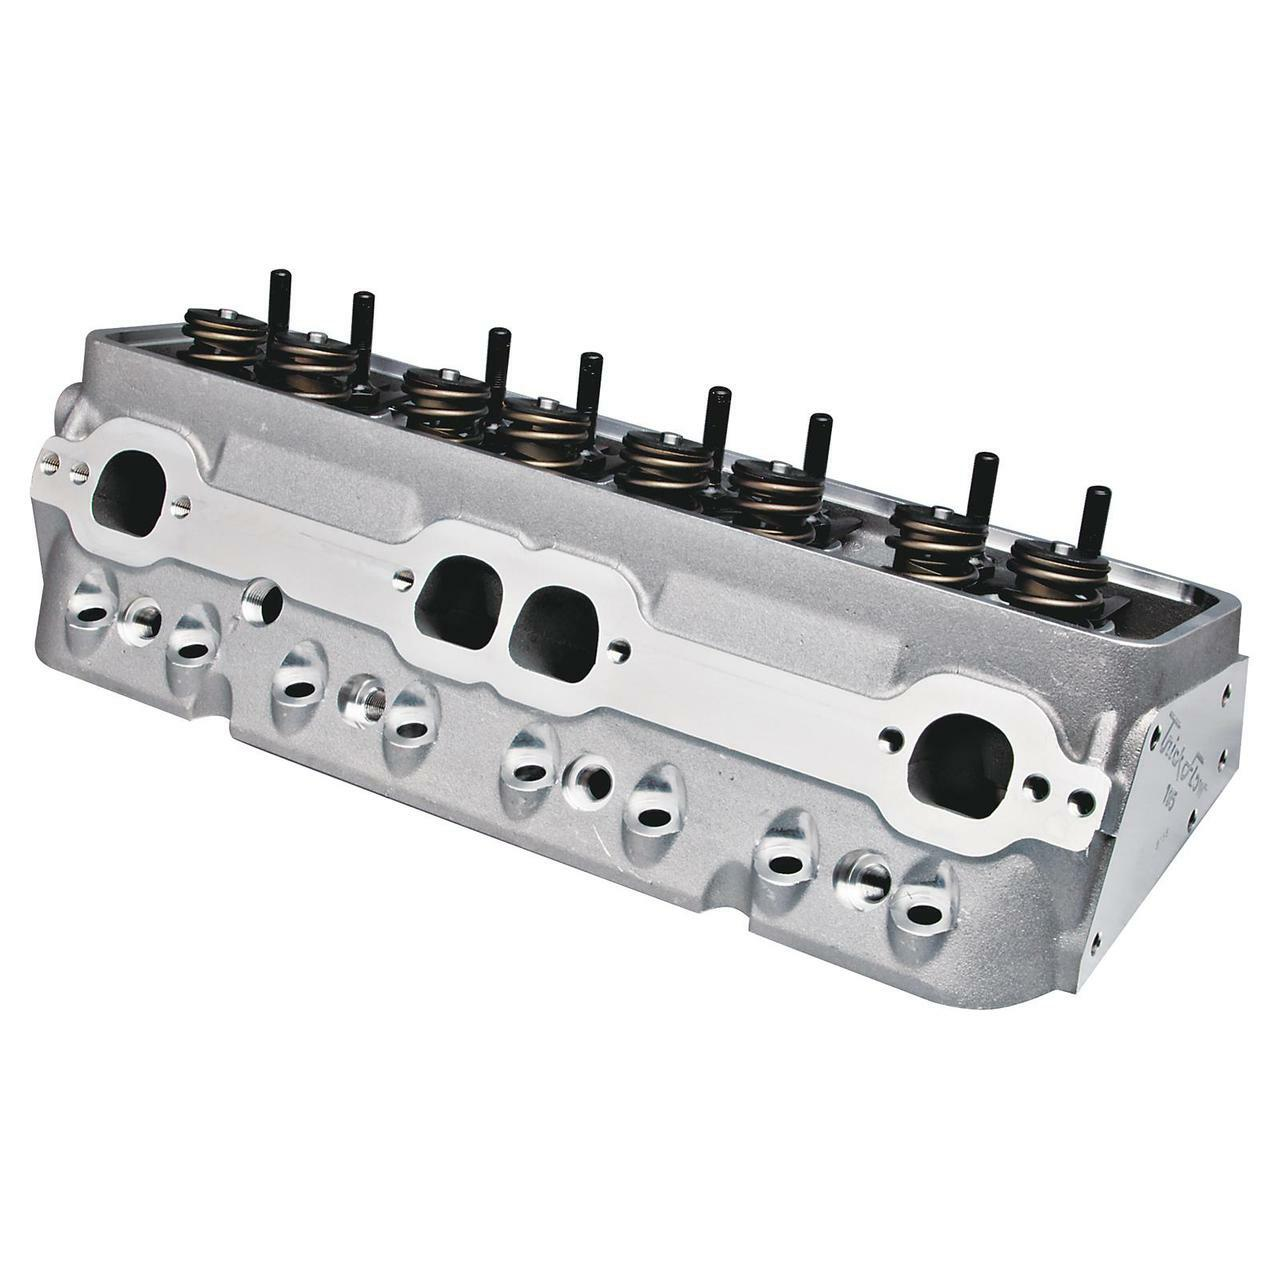 Trick Flow Specialties 465 HP Super 23® Top-End Engine Kits for Small Block Chevrolet TFS-K315-465-450